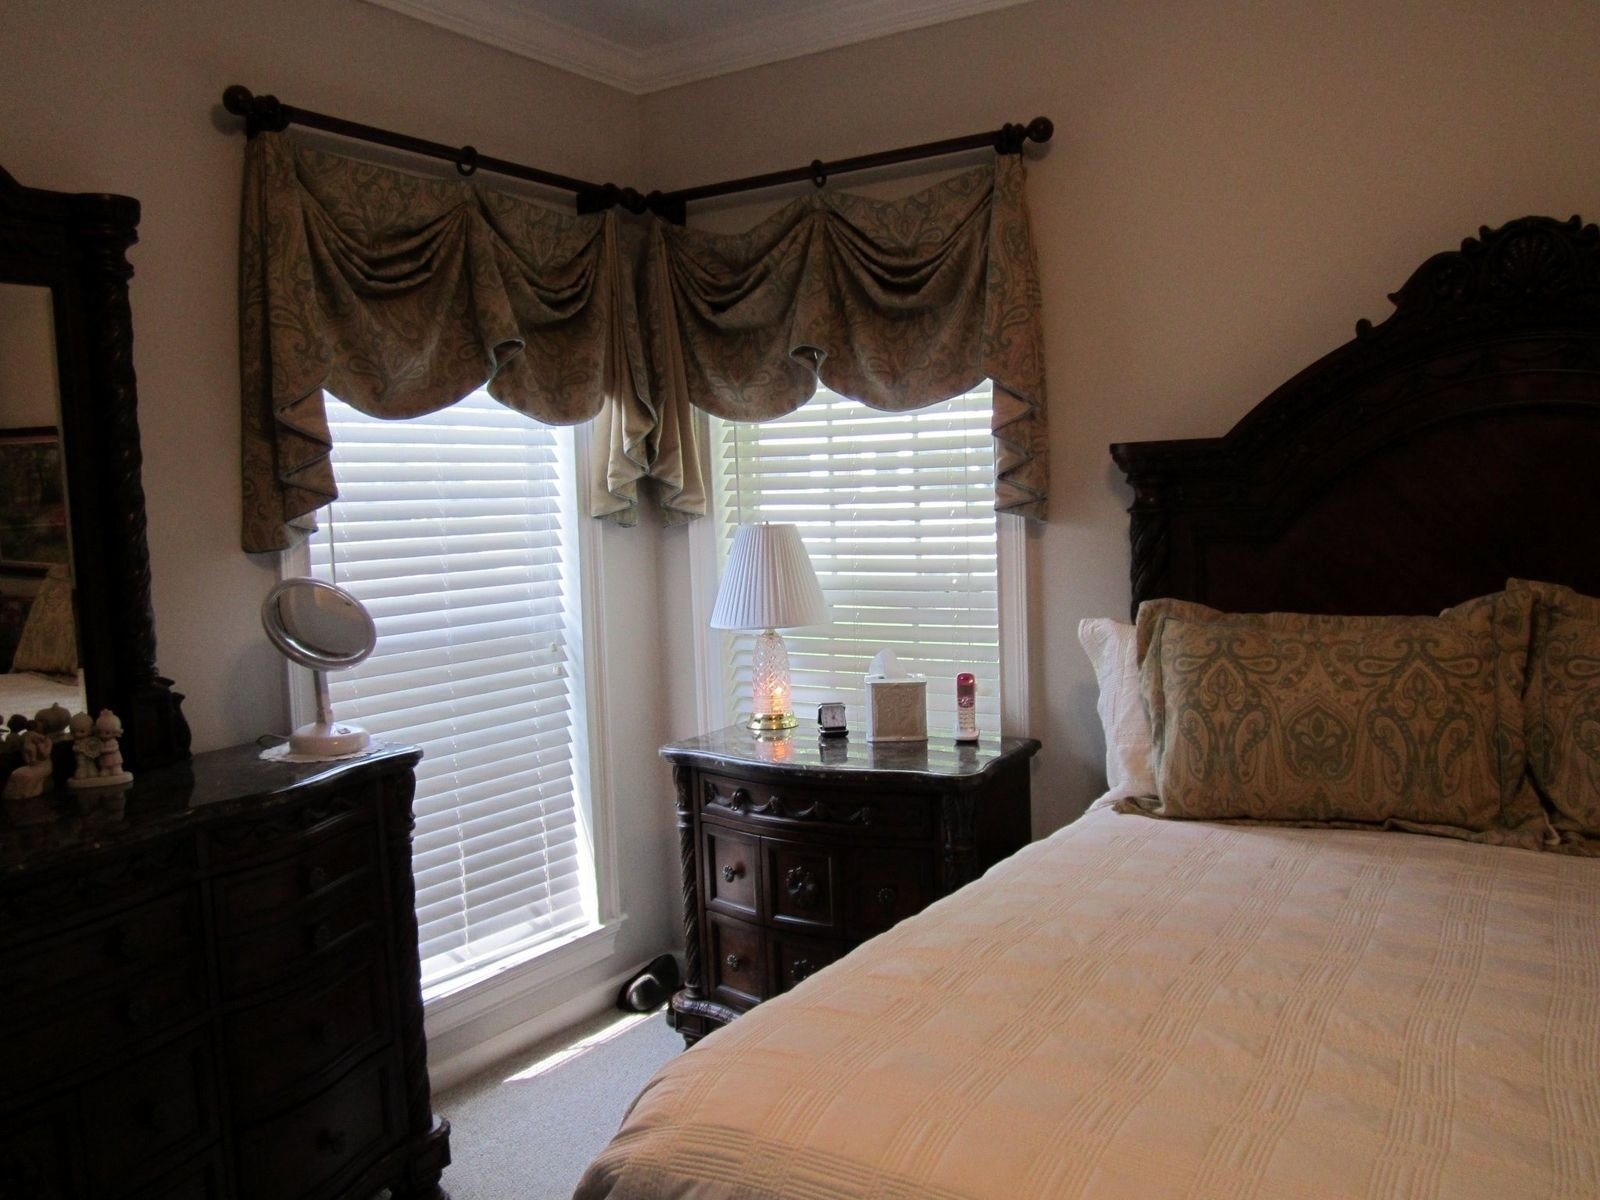 Best Custom Valances For Master Bedroom With Matching Pillow With Pictures